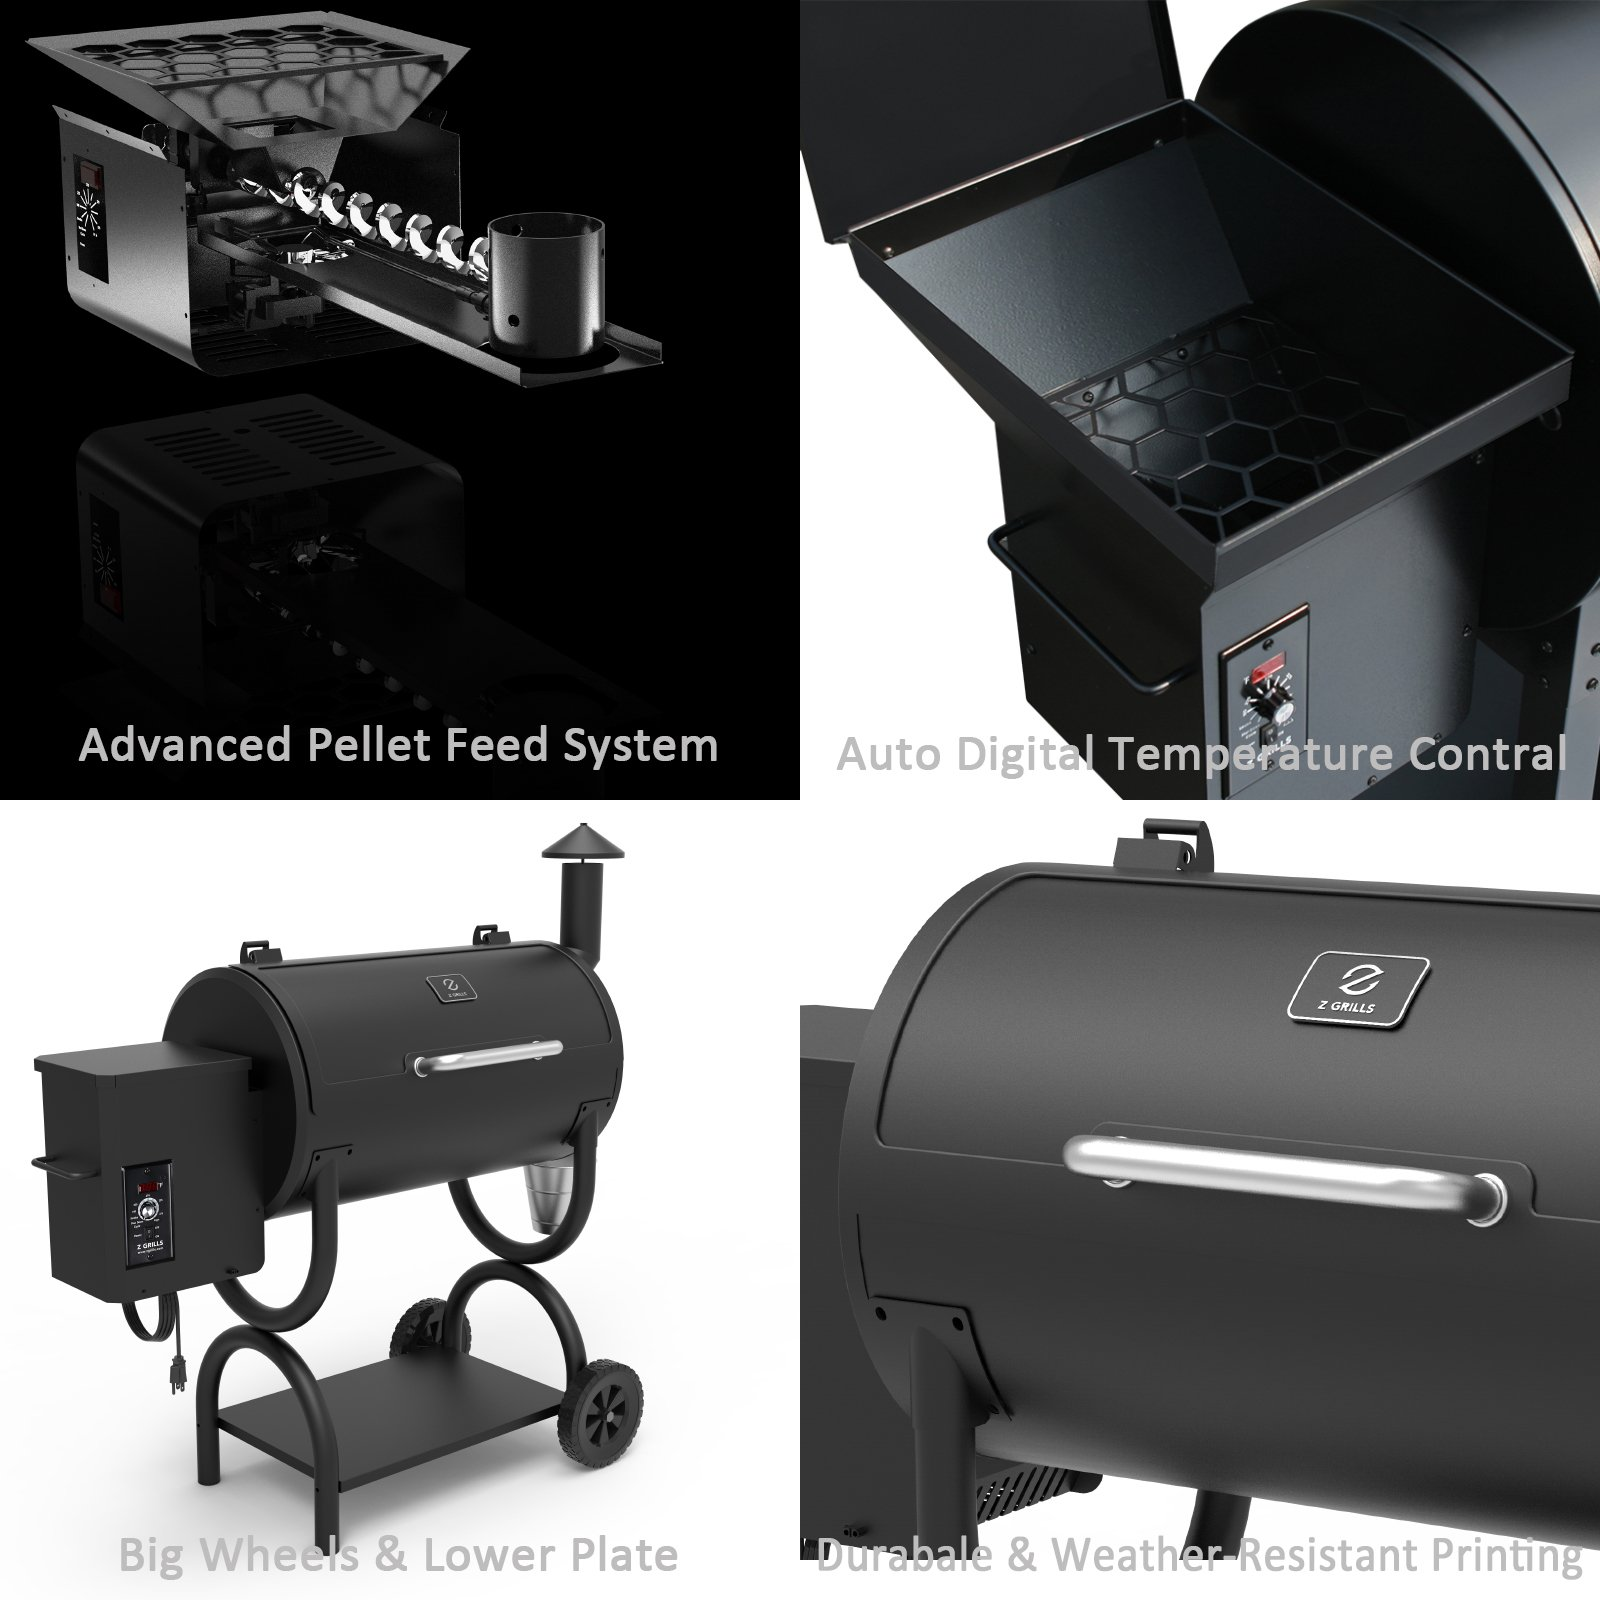 Z GRILLS ZPG-550B 2019 Upgrade Model Wood Pellet Grill & Smoker 6 in 1 BBQ Grill Auto Temperature Control, 550 sq Inch Deal, Black by Z GRILLS (Image #3)